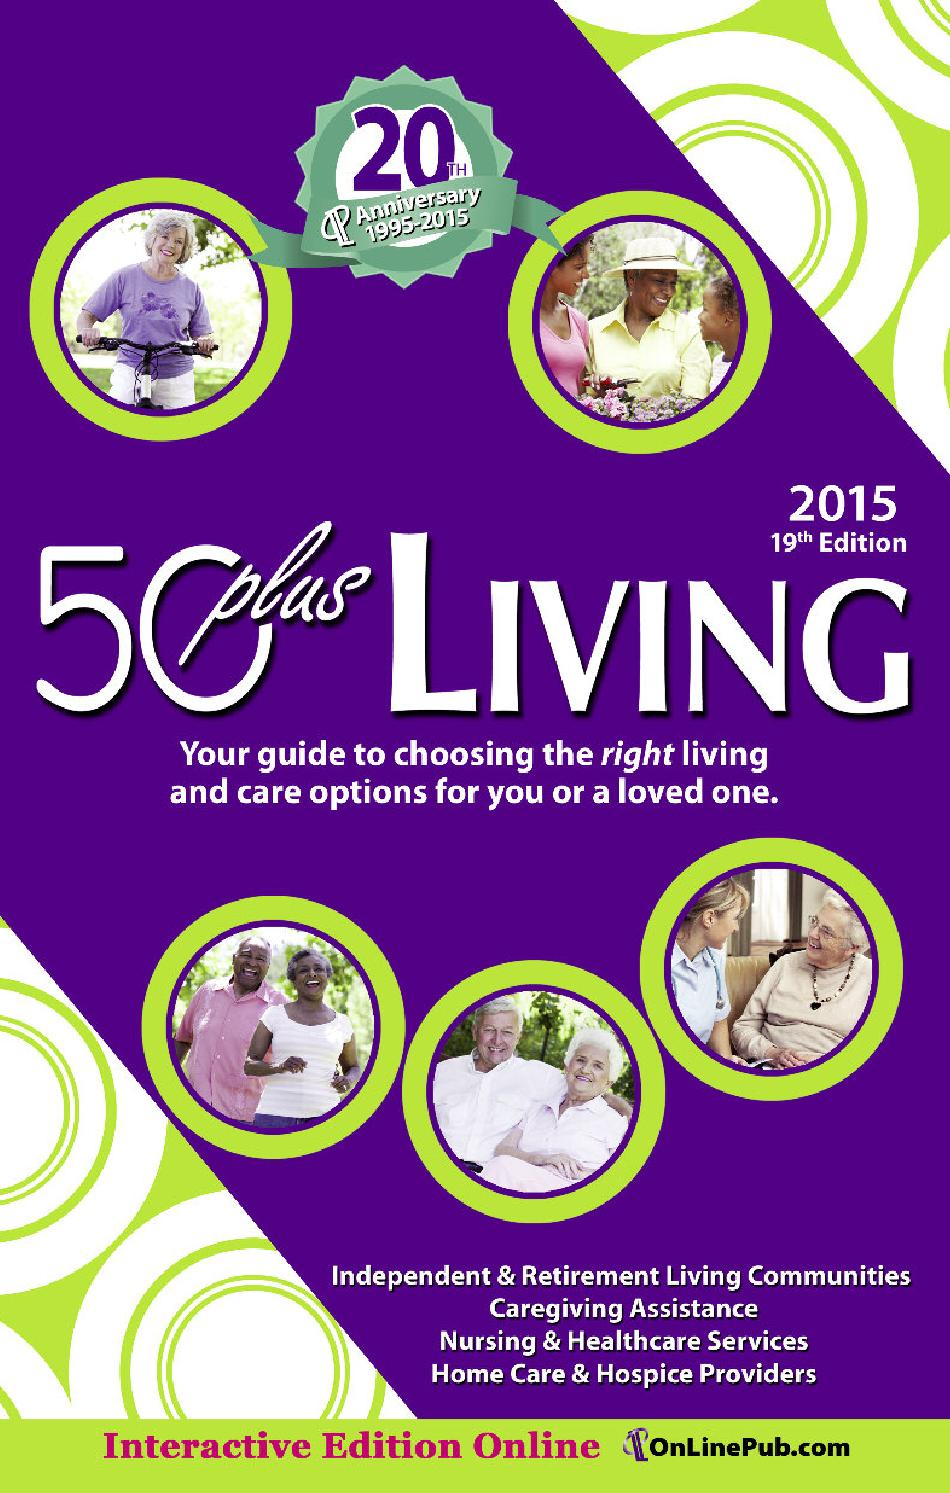 50plus Living 2015 by On-Line Publishers, Inc  - issuu